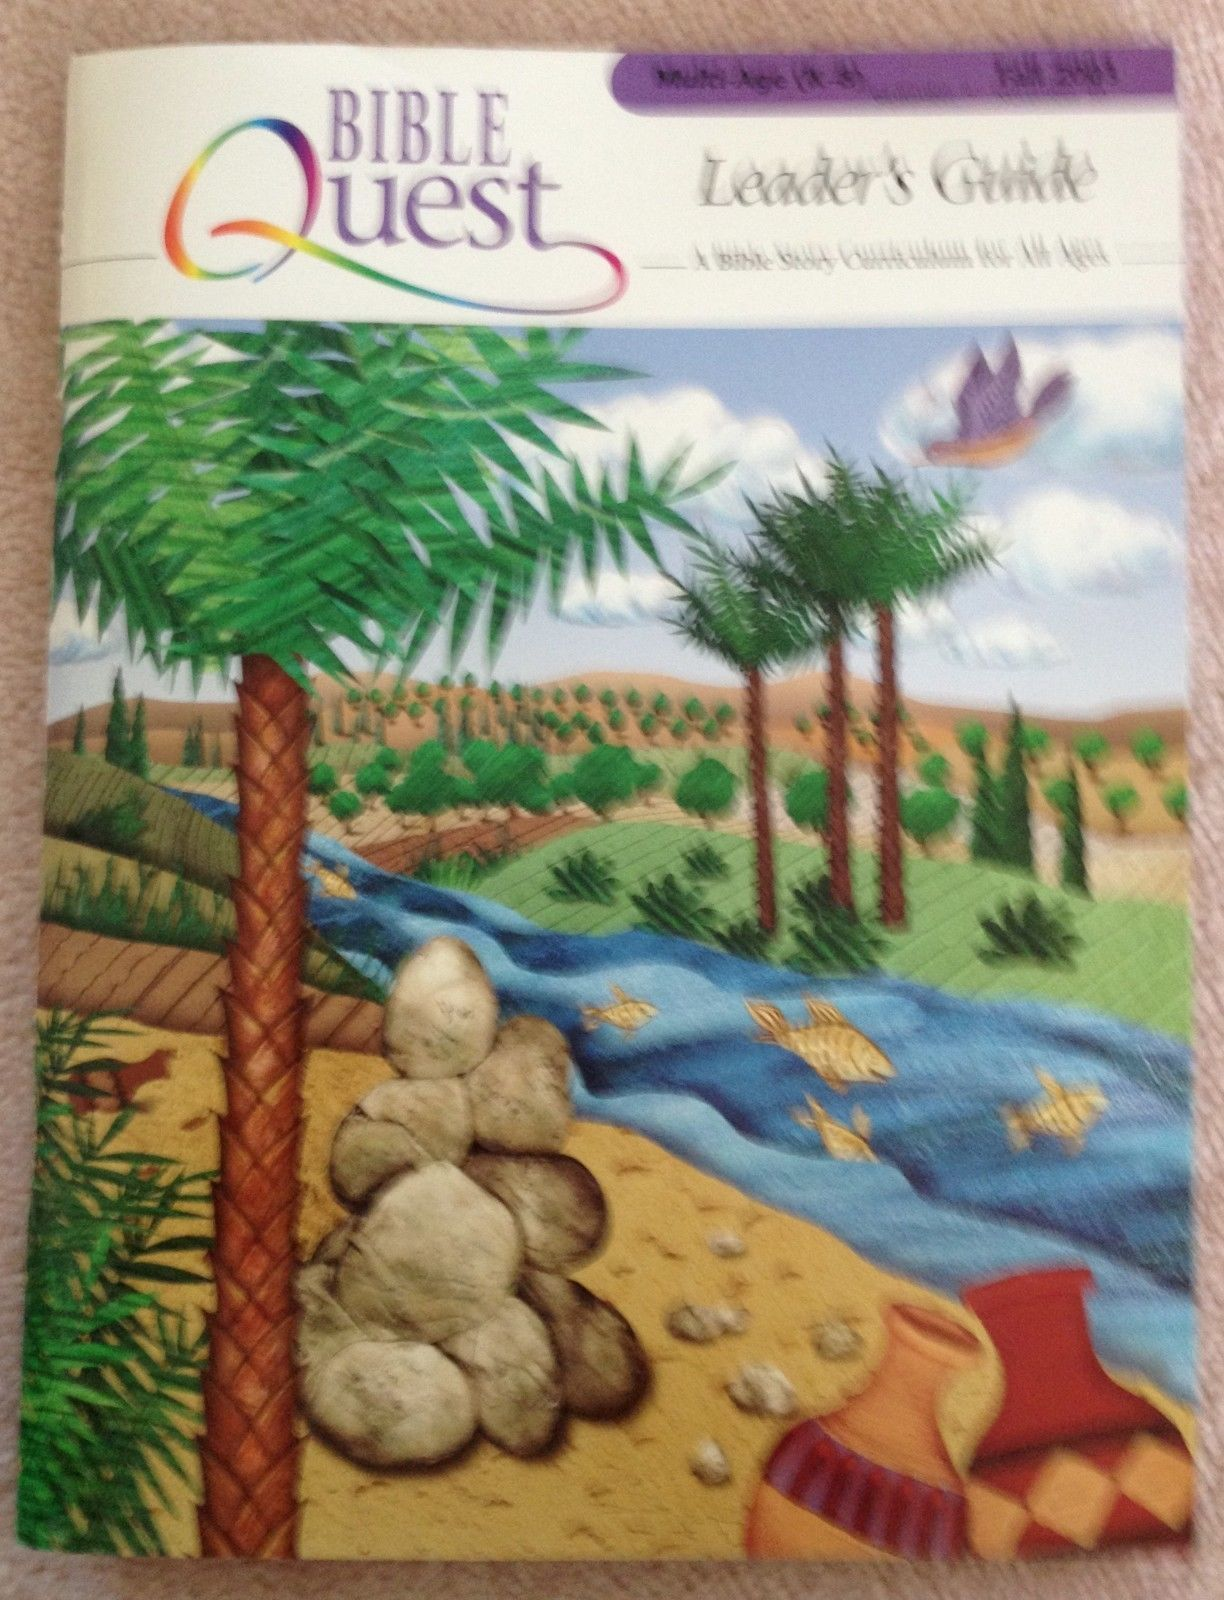 Bible Quest Leader's Guide CD Multi-Age K-8 Faith Formation Church Sunday School